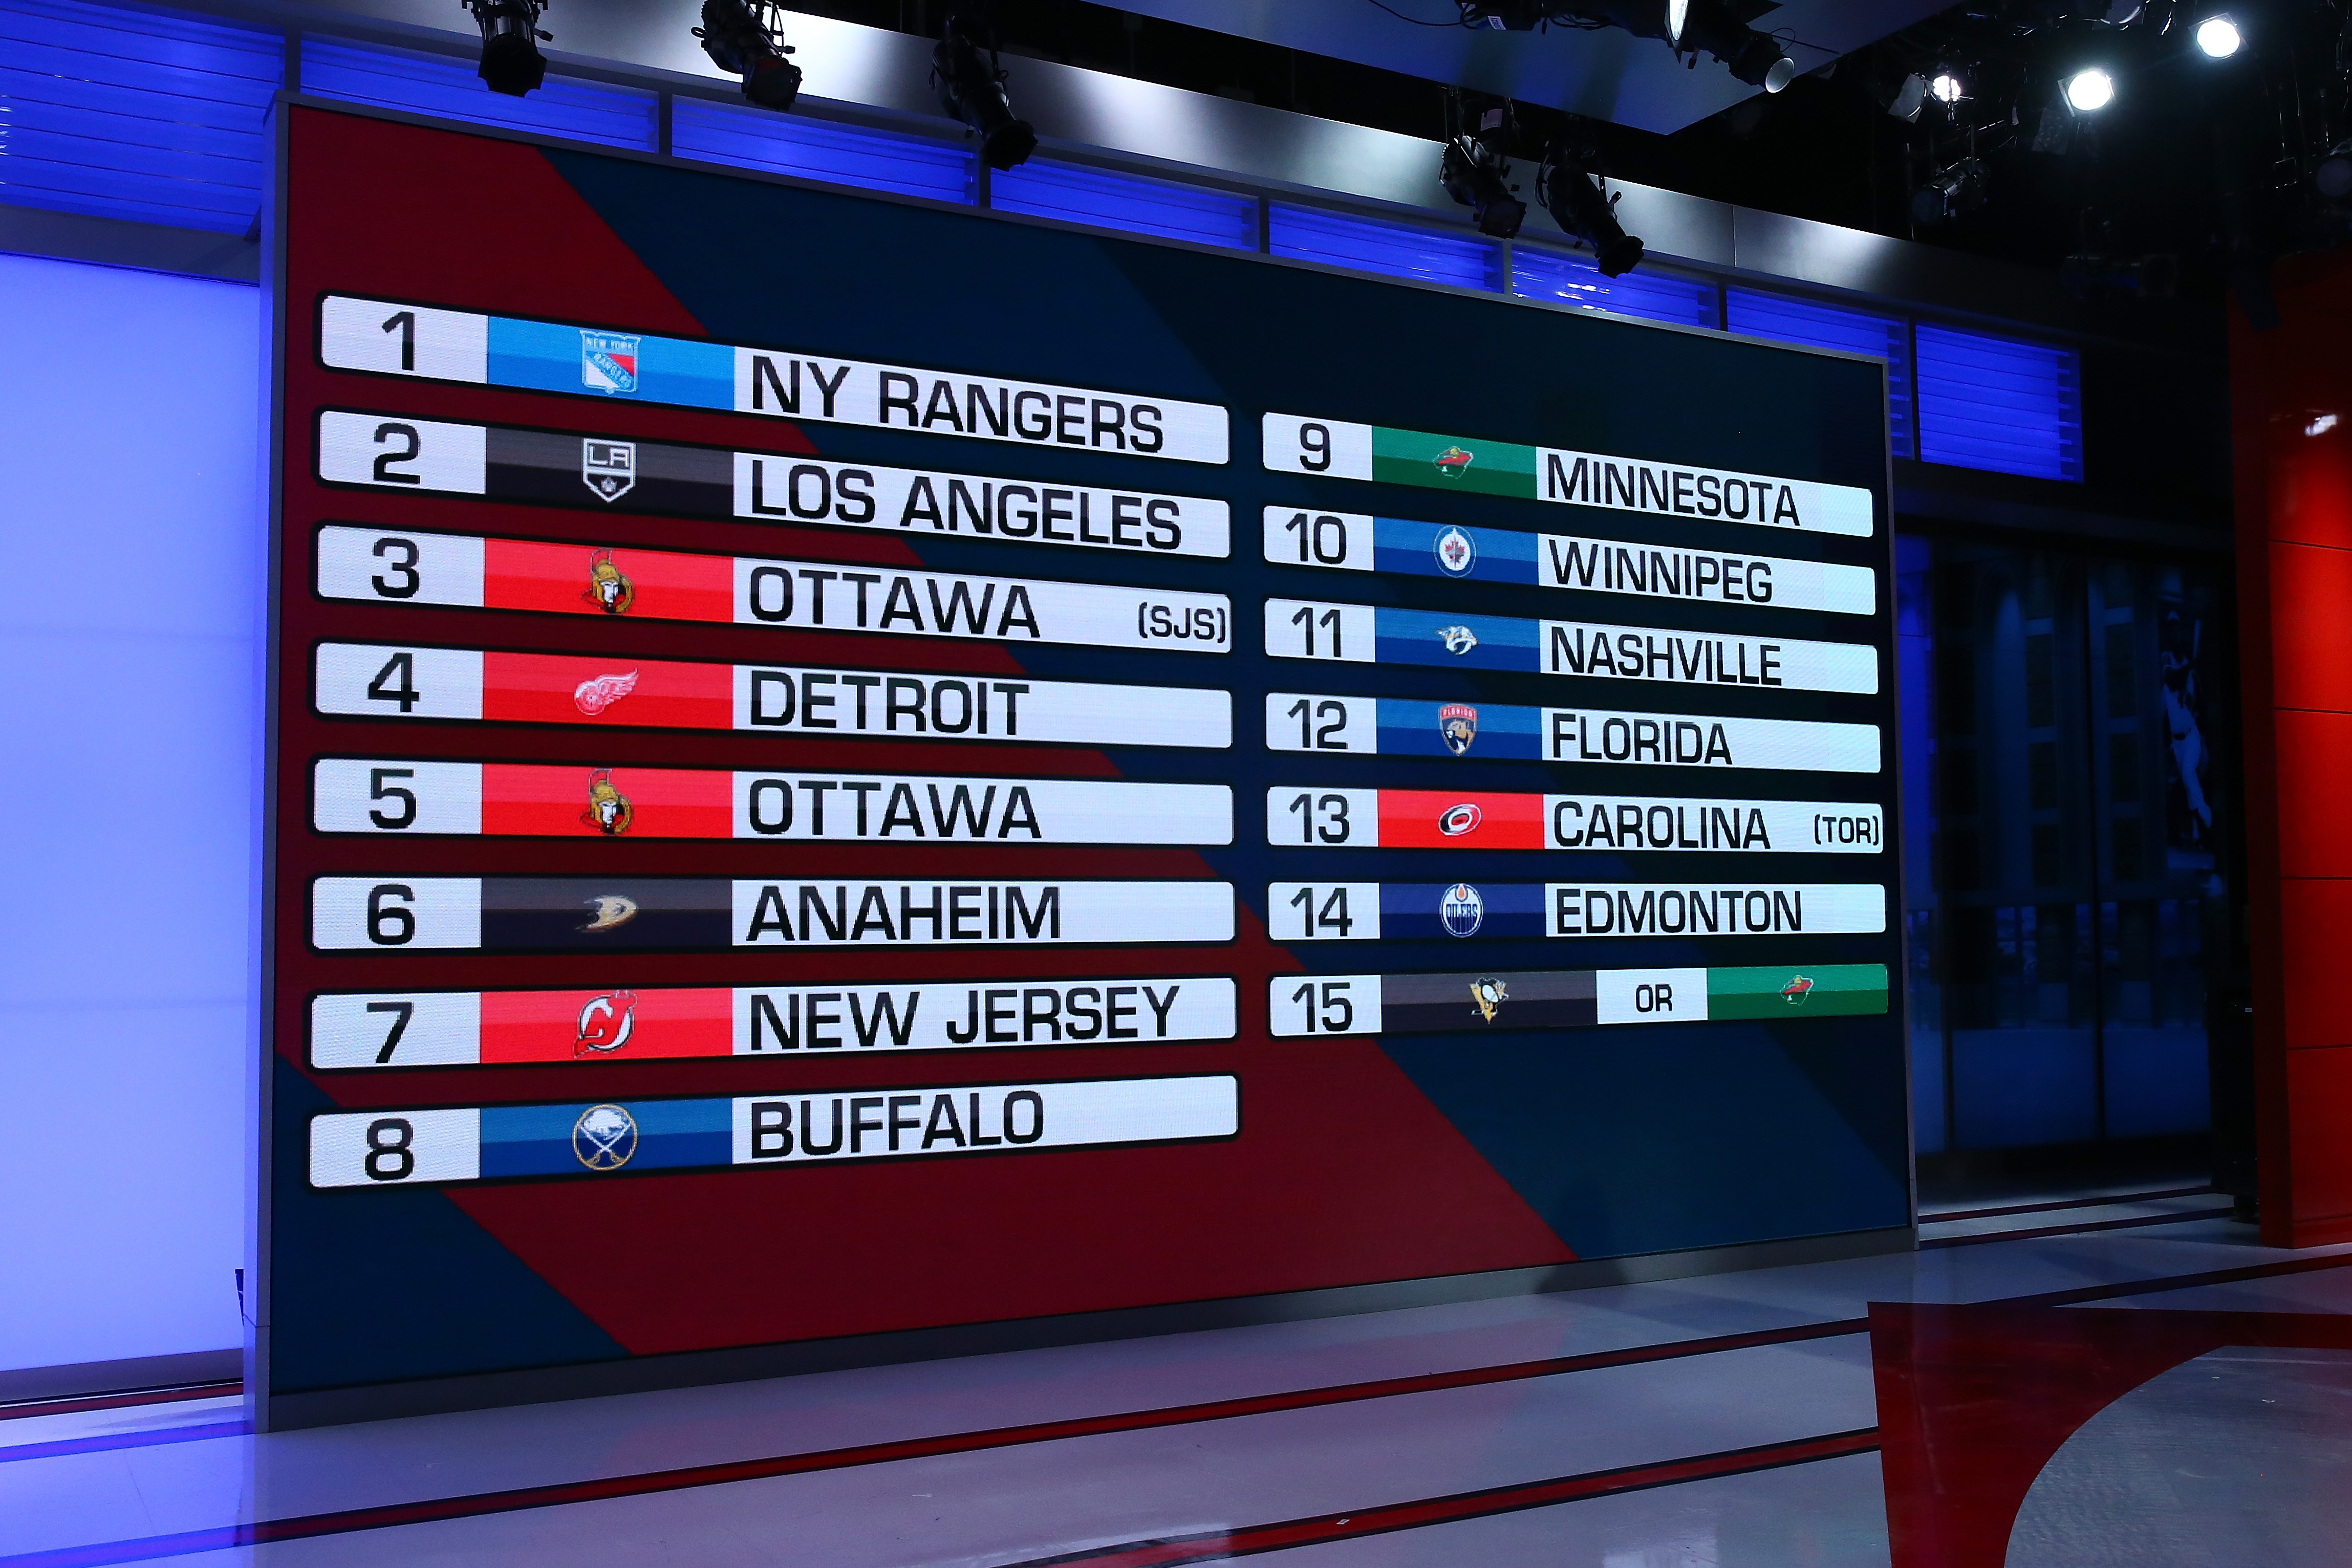 SECAUCUS, NEW JERSEY - AUGUST 10: 2020 NHL draft positions are seen during Phase 2 of the 2020 NHL Draft Lottery on August 10, 2020 at the NHL Network's studio in Secaucus, New Jersey.